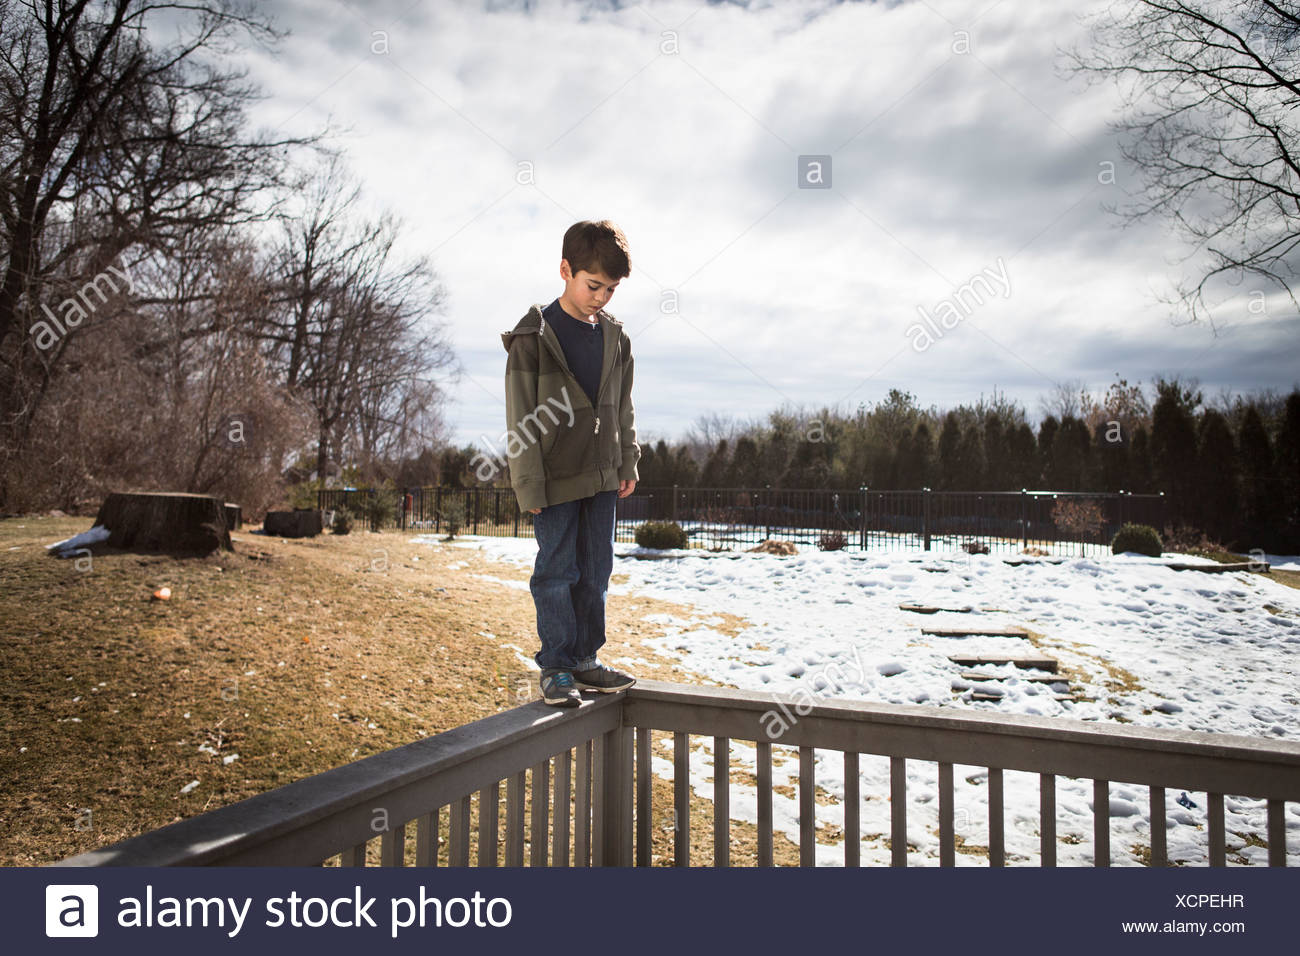 Boy balancing on top of fence in park - Stock Image